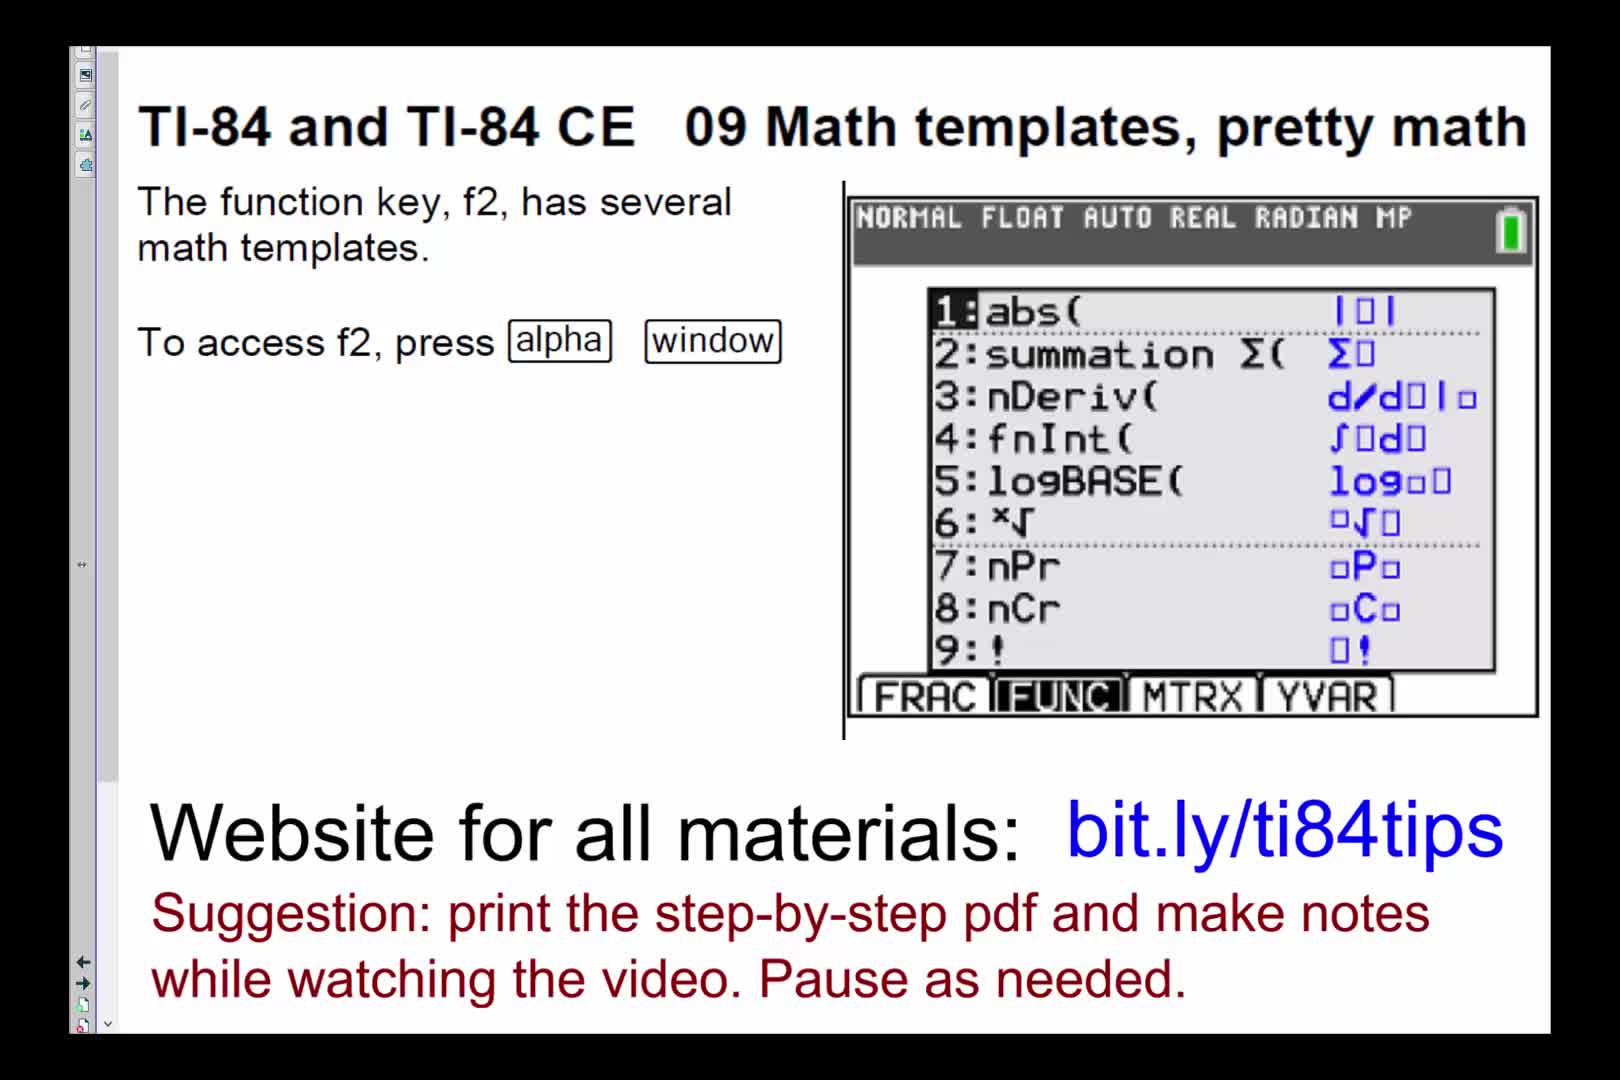 09_Math_Templates_Pretty_Math_TI84andTI84CE